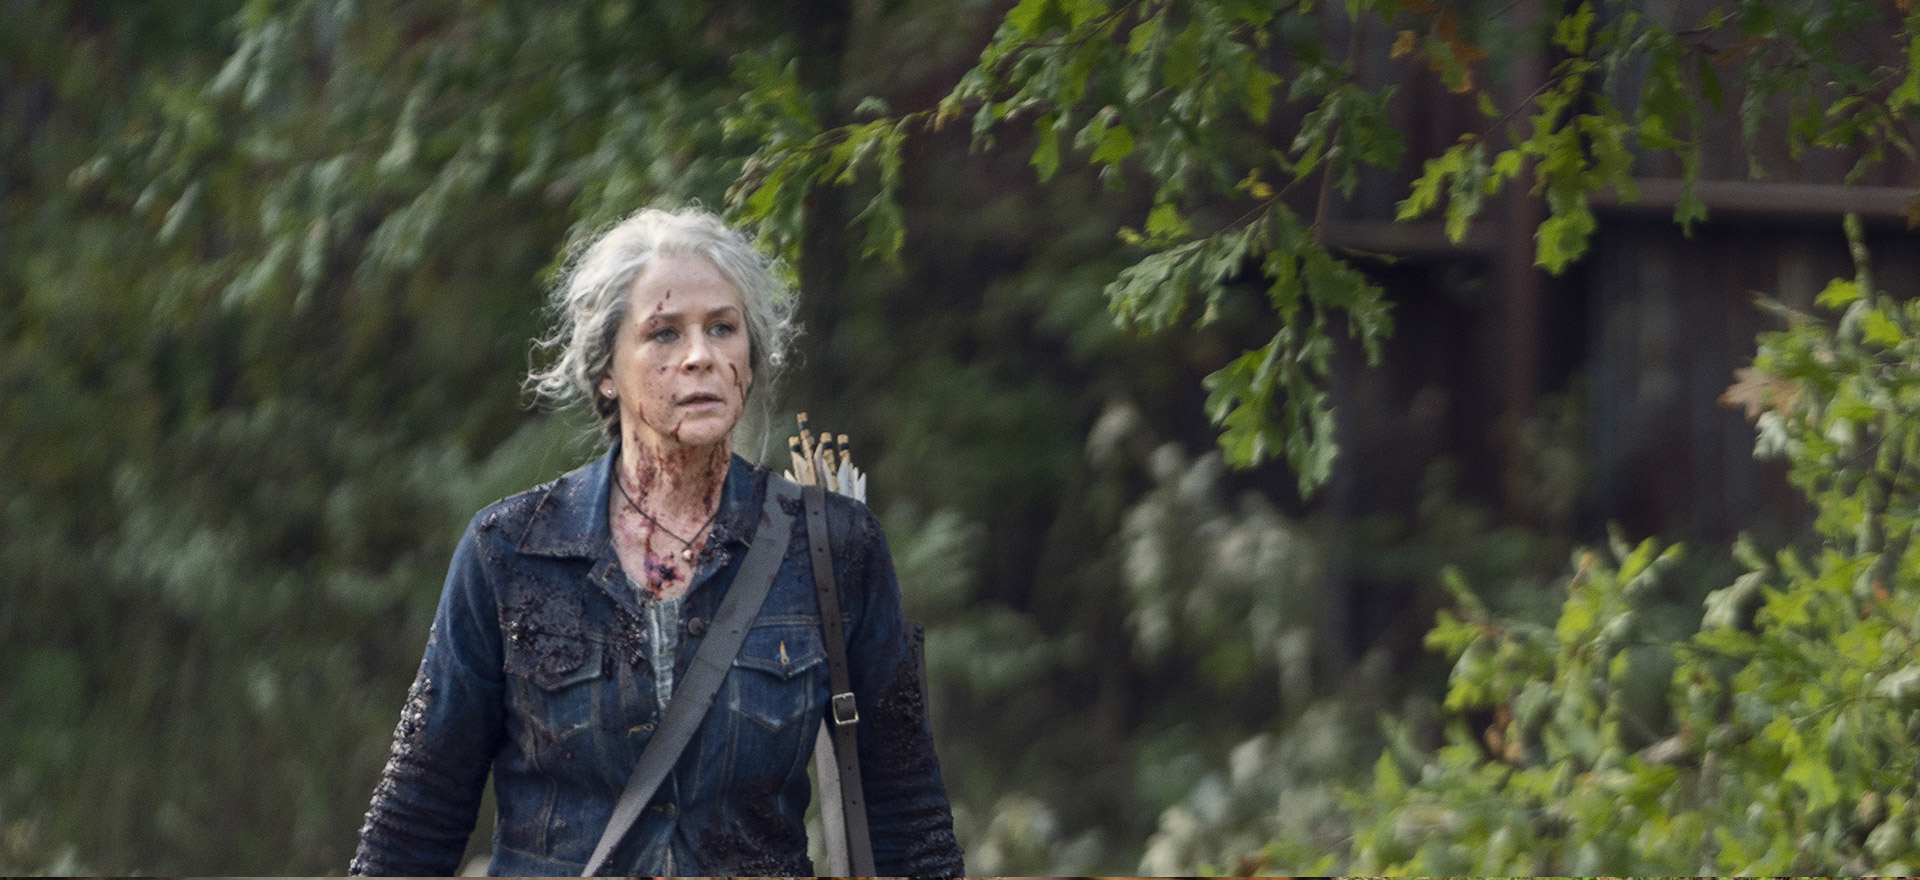 The Walking Dead Q&A — Melissa McBride On Carol's Alone Time and Working With Dogs and Rats